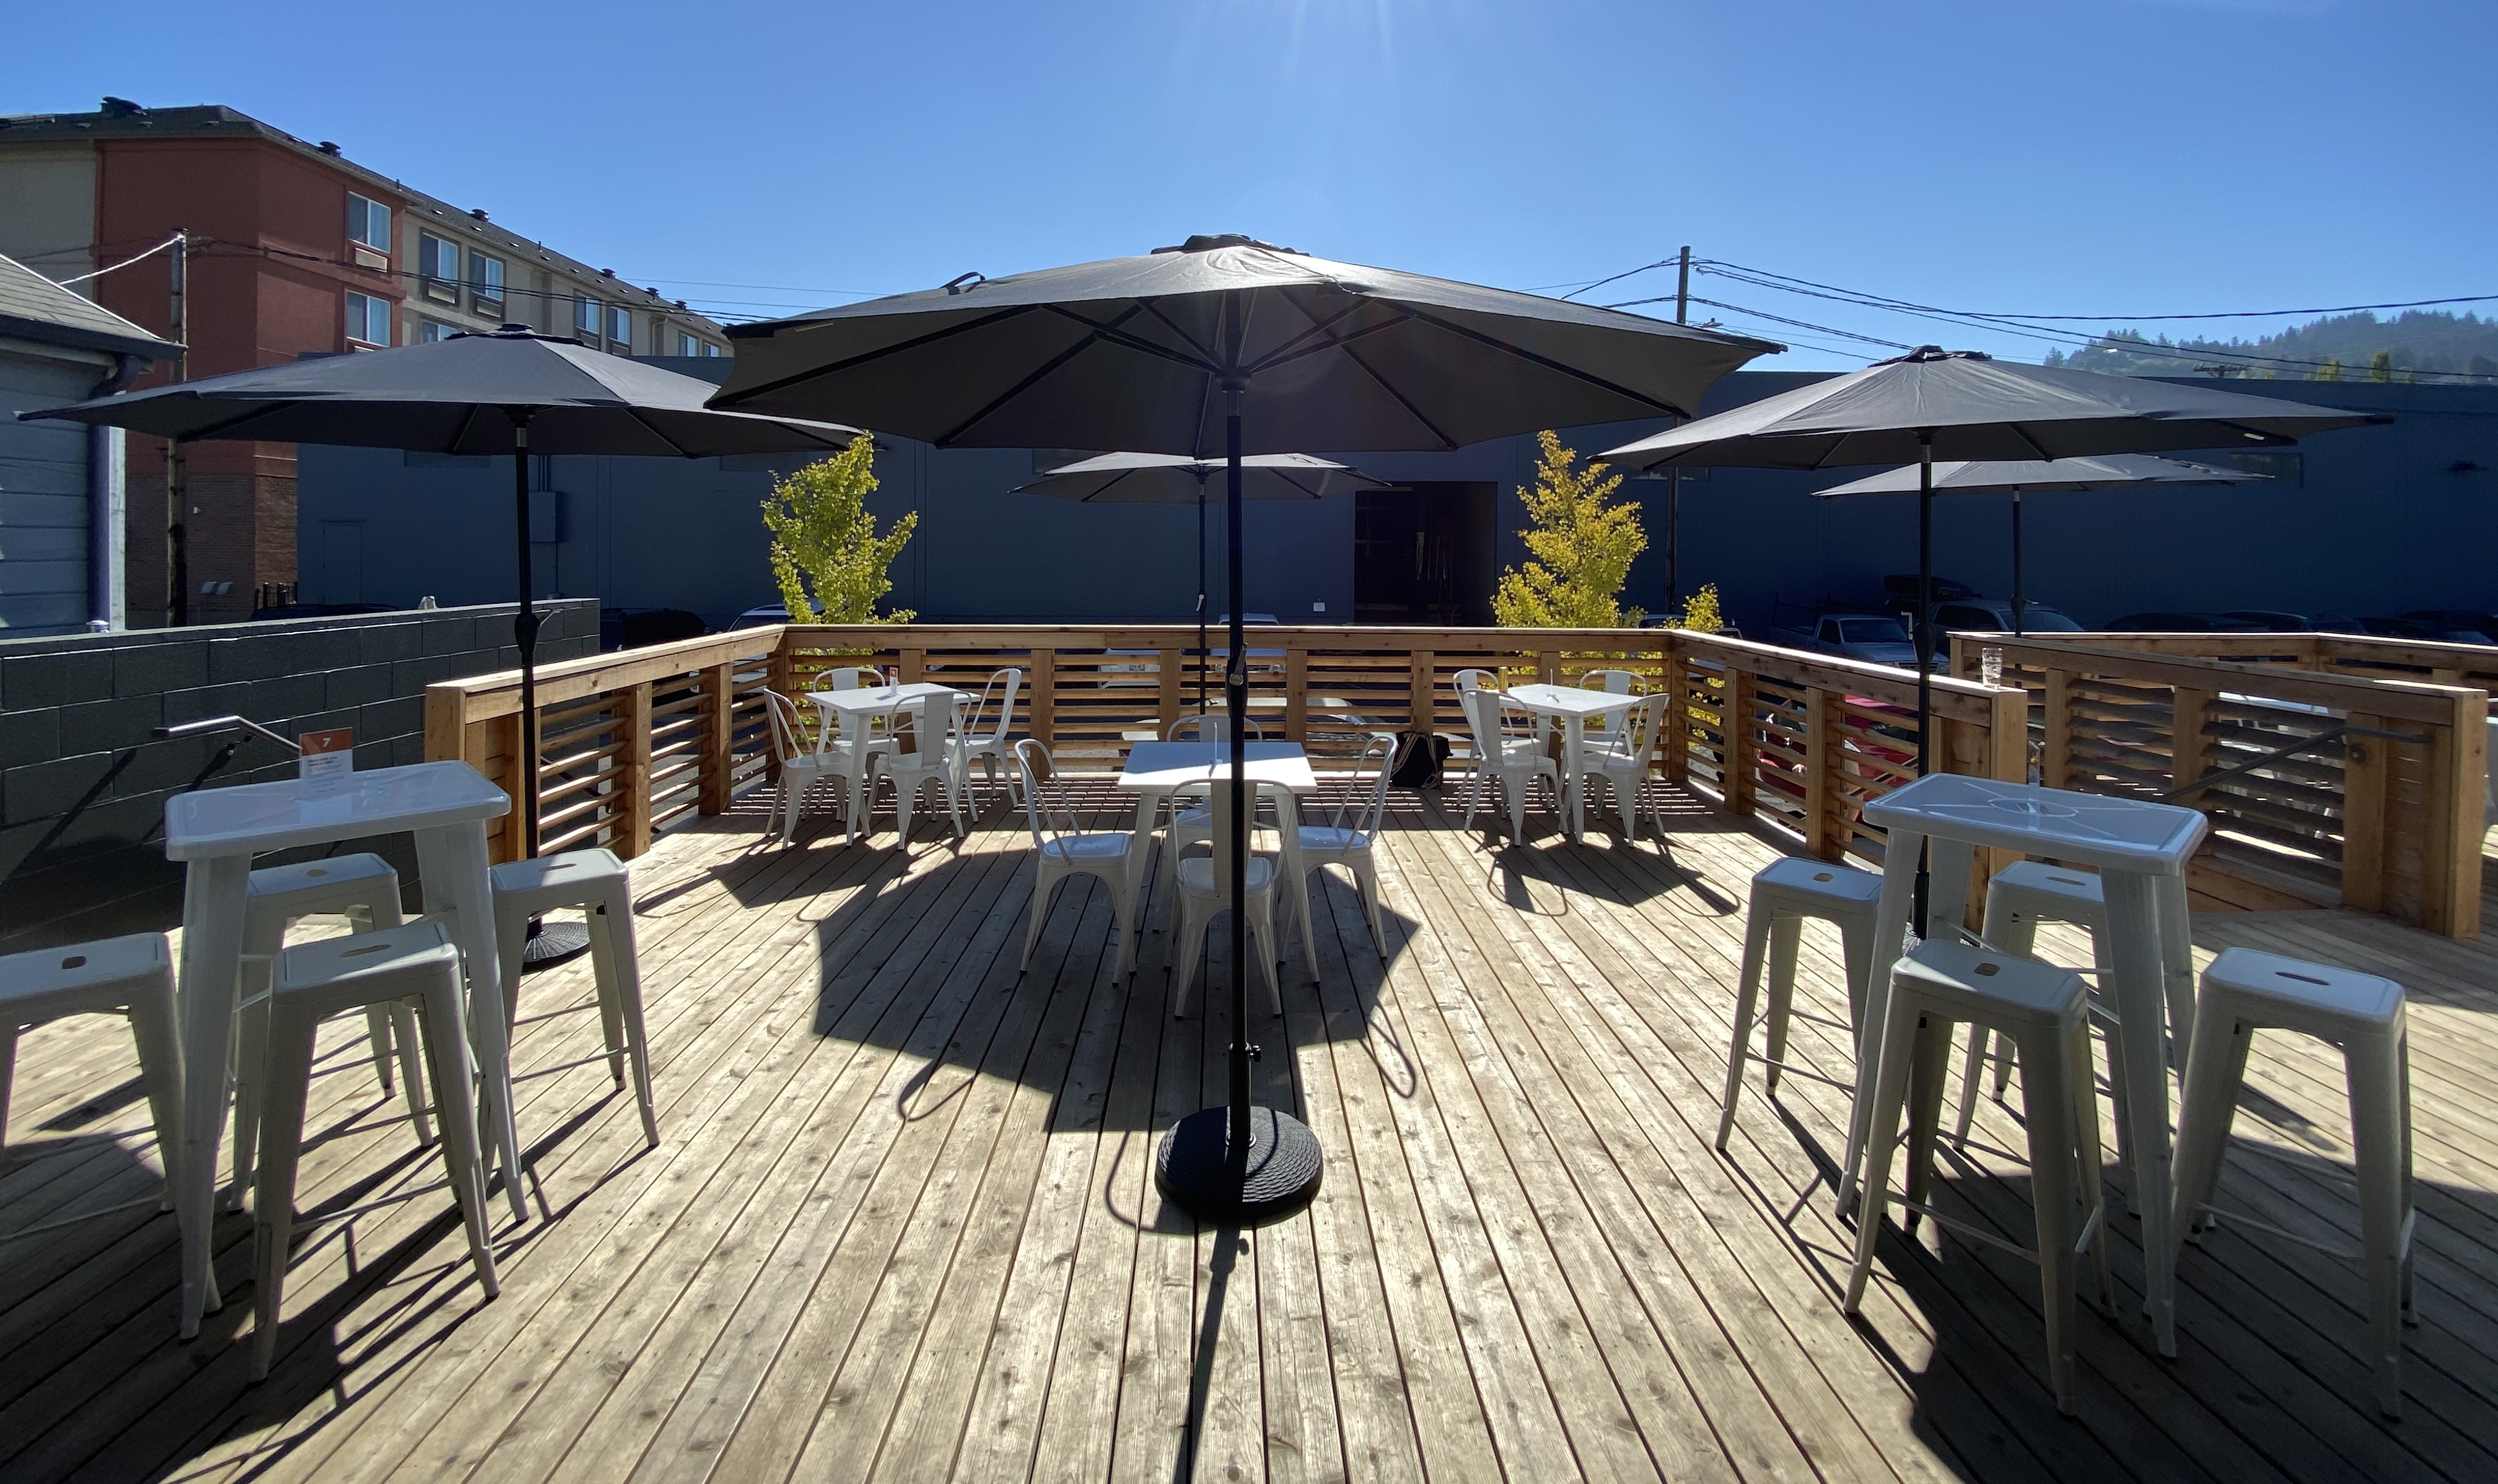 The outdoor deck is spacious at Hammer & Stitch Brewing.